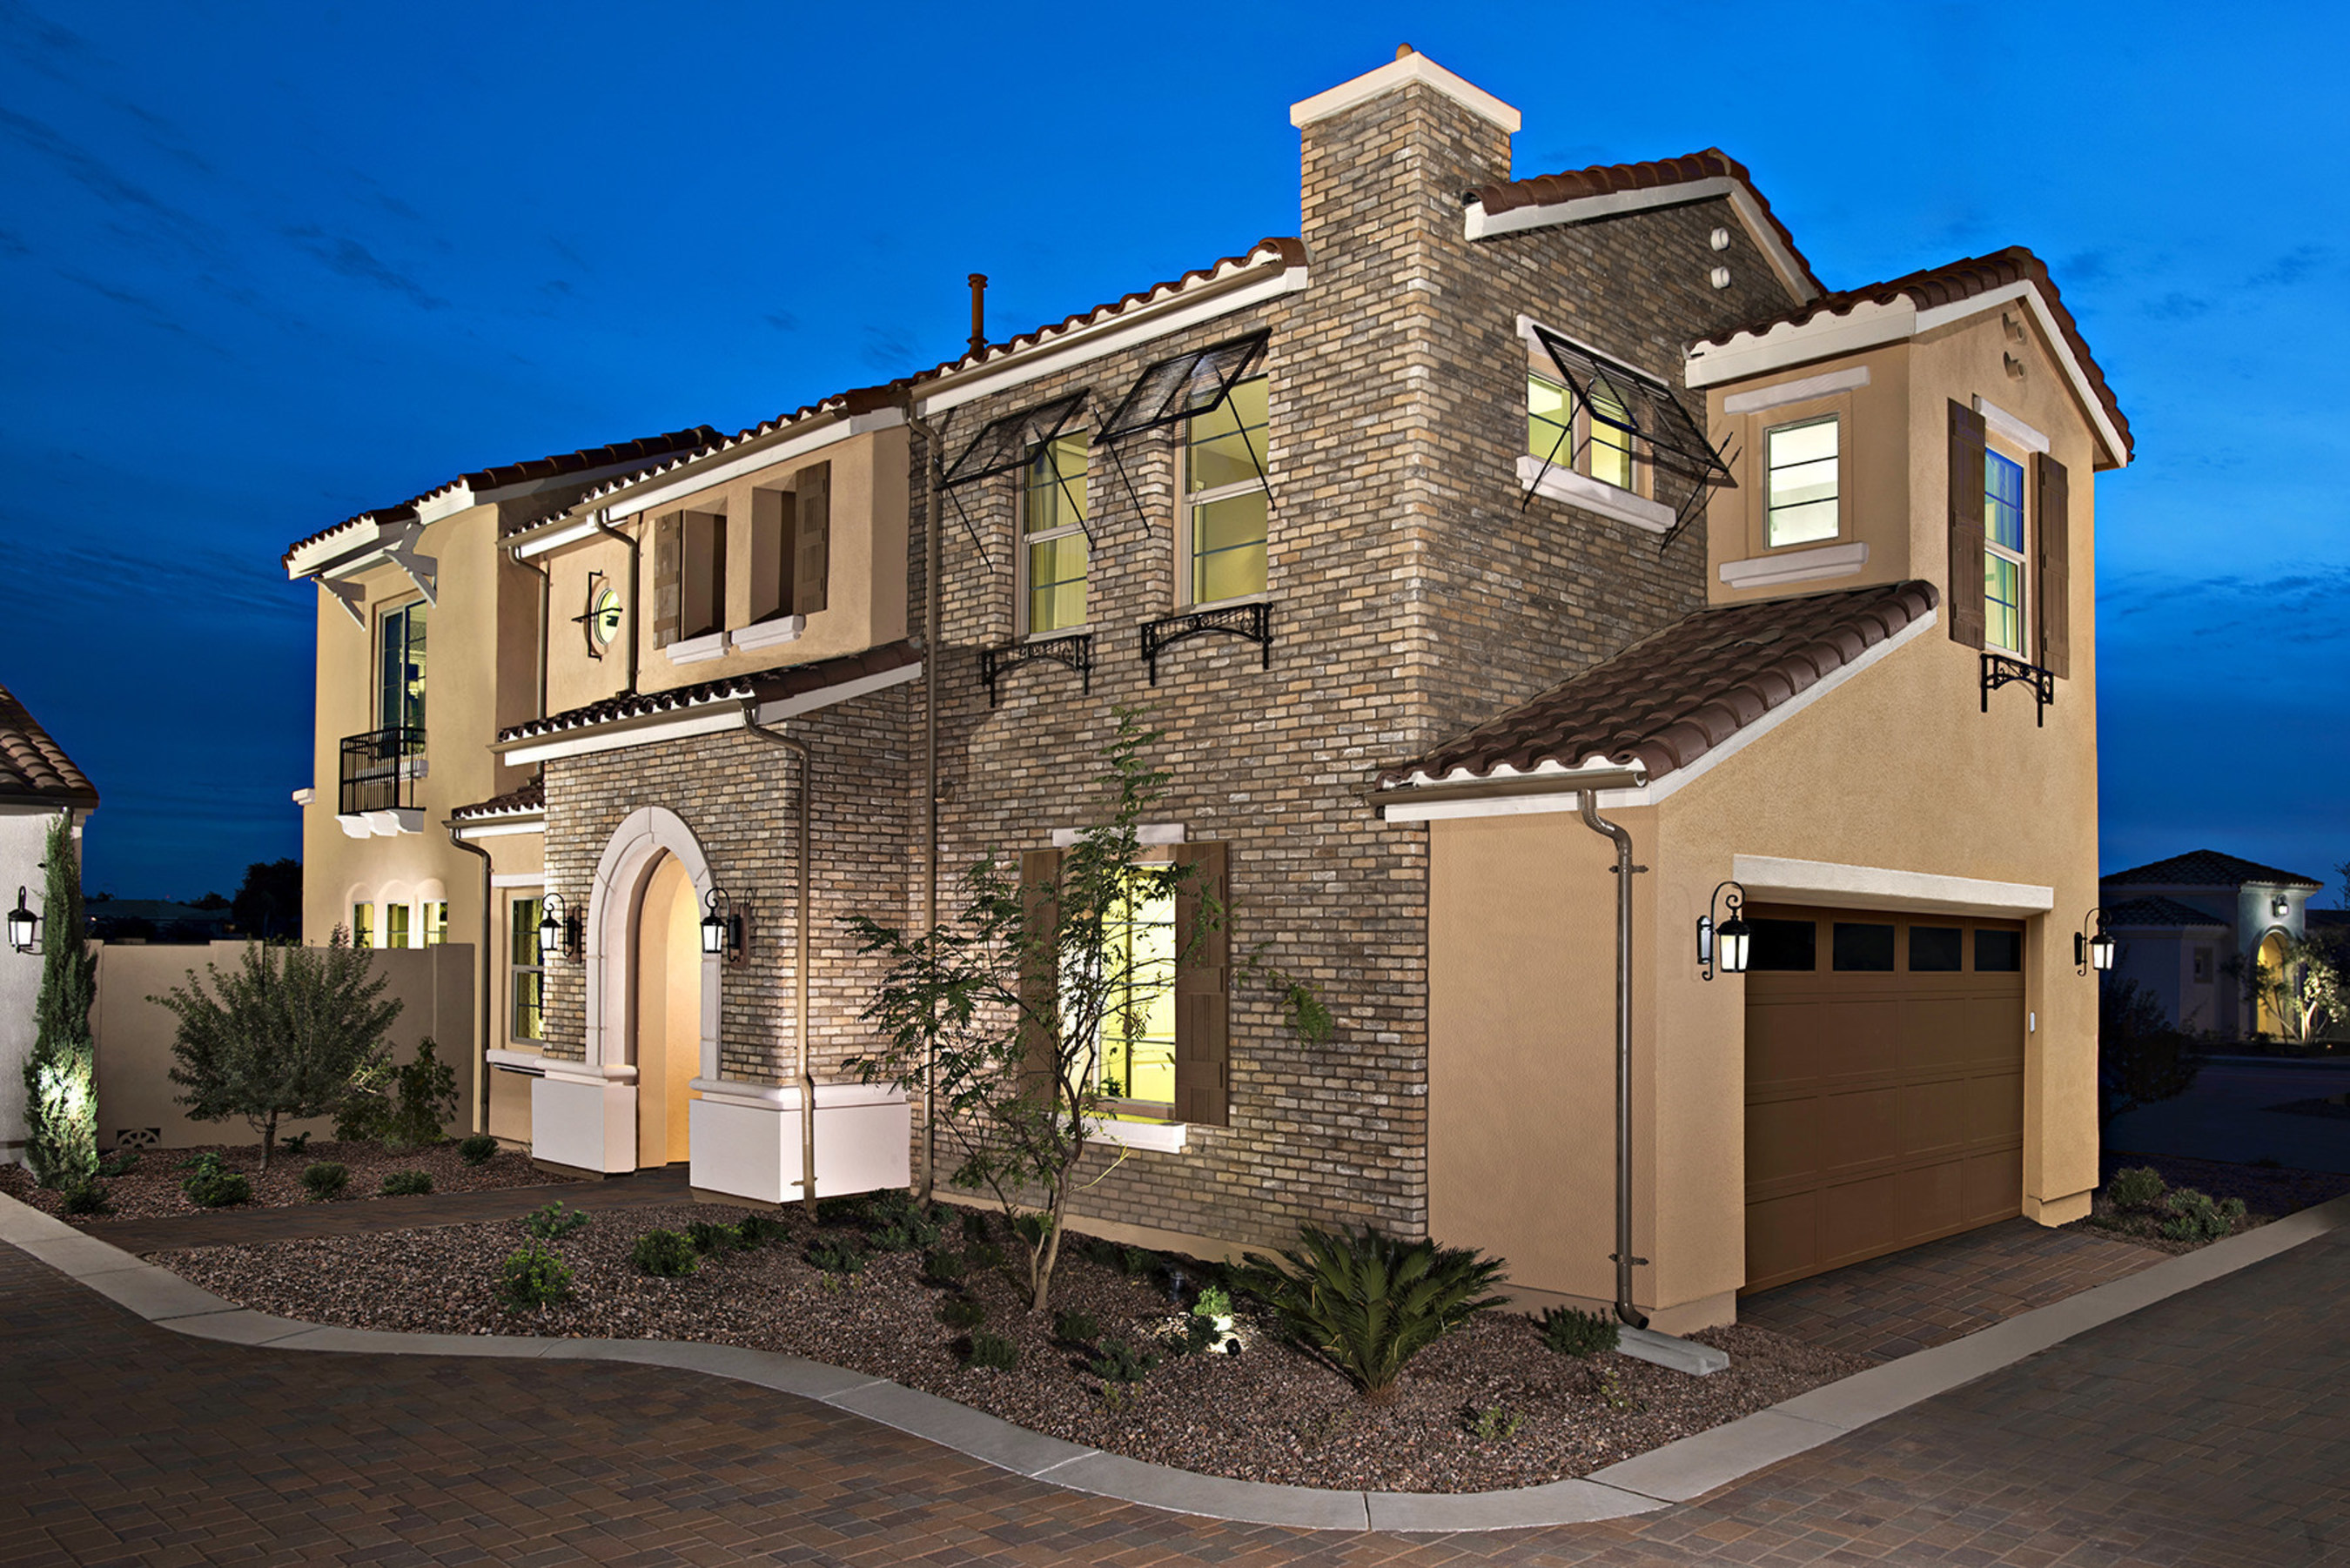 New Homes Now Available In Ocotillo Master-Planned Community